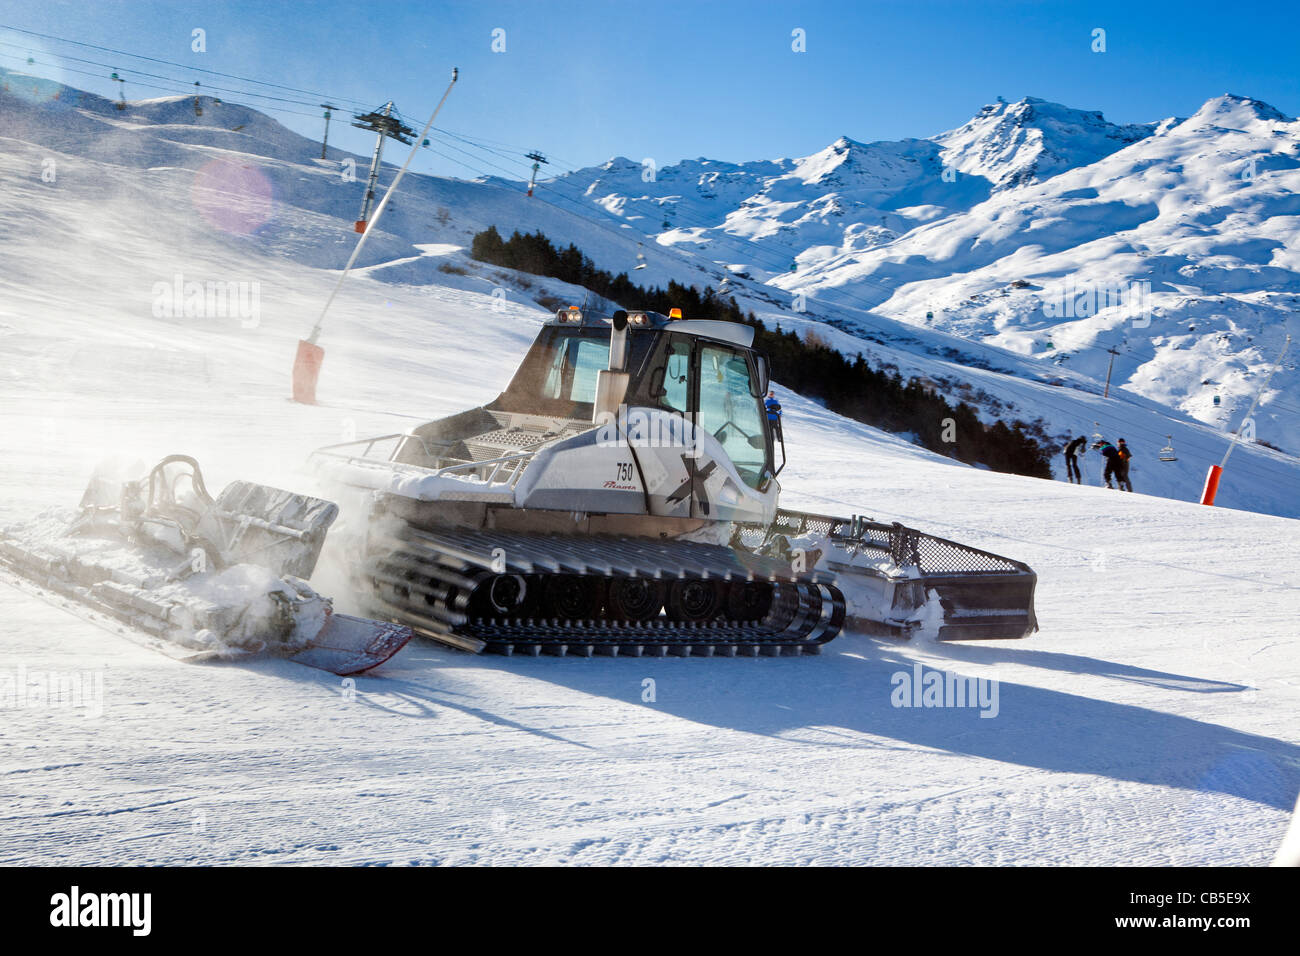 Piste Basher in the Three Valleys (Trois Vallees), Les Menuires, Savoie, France. - Stock Image